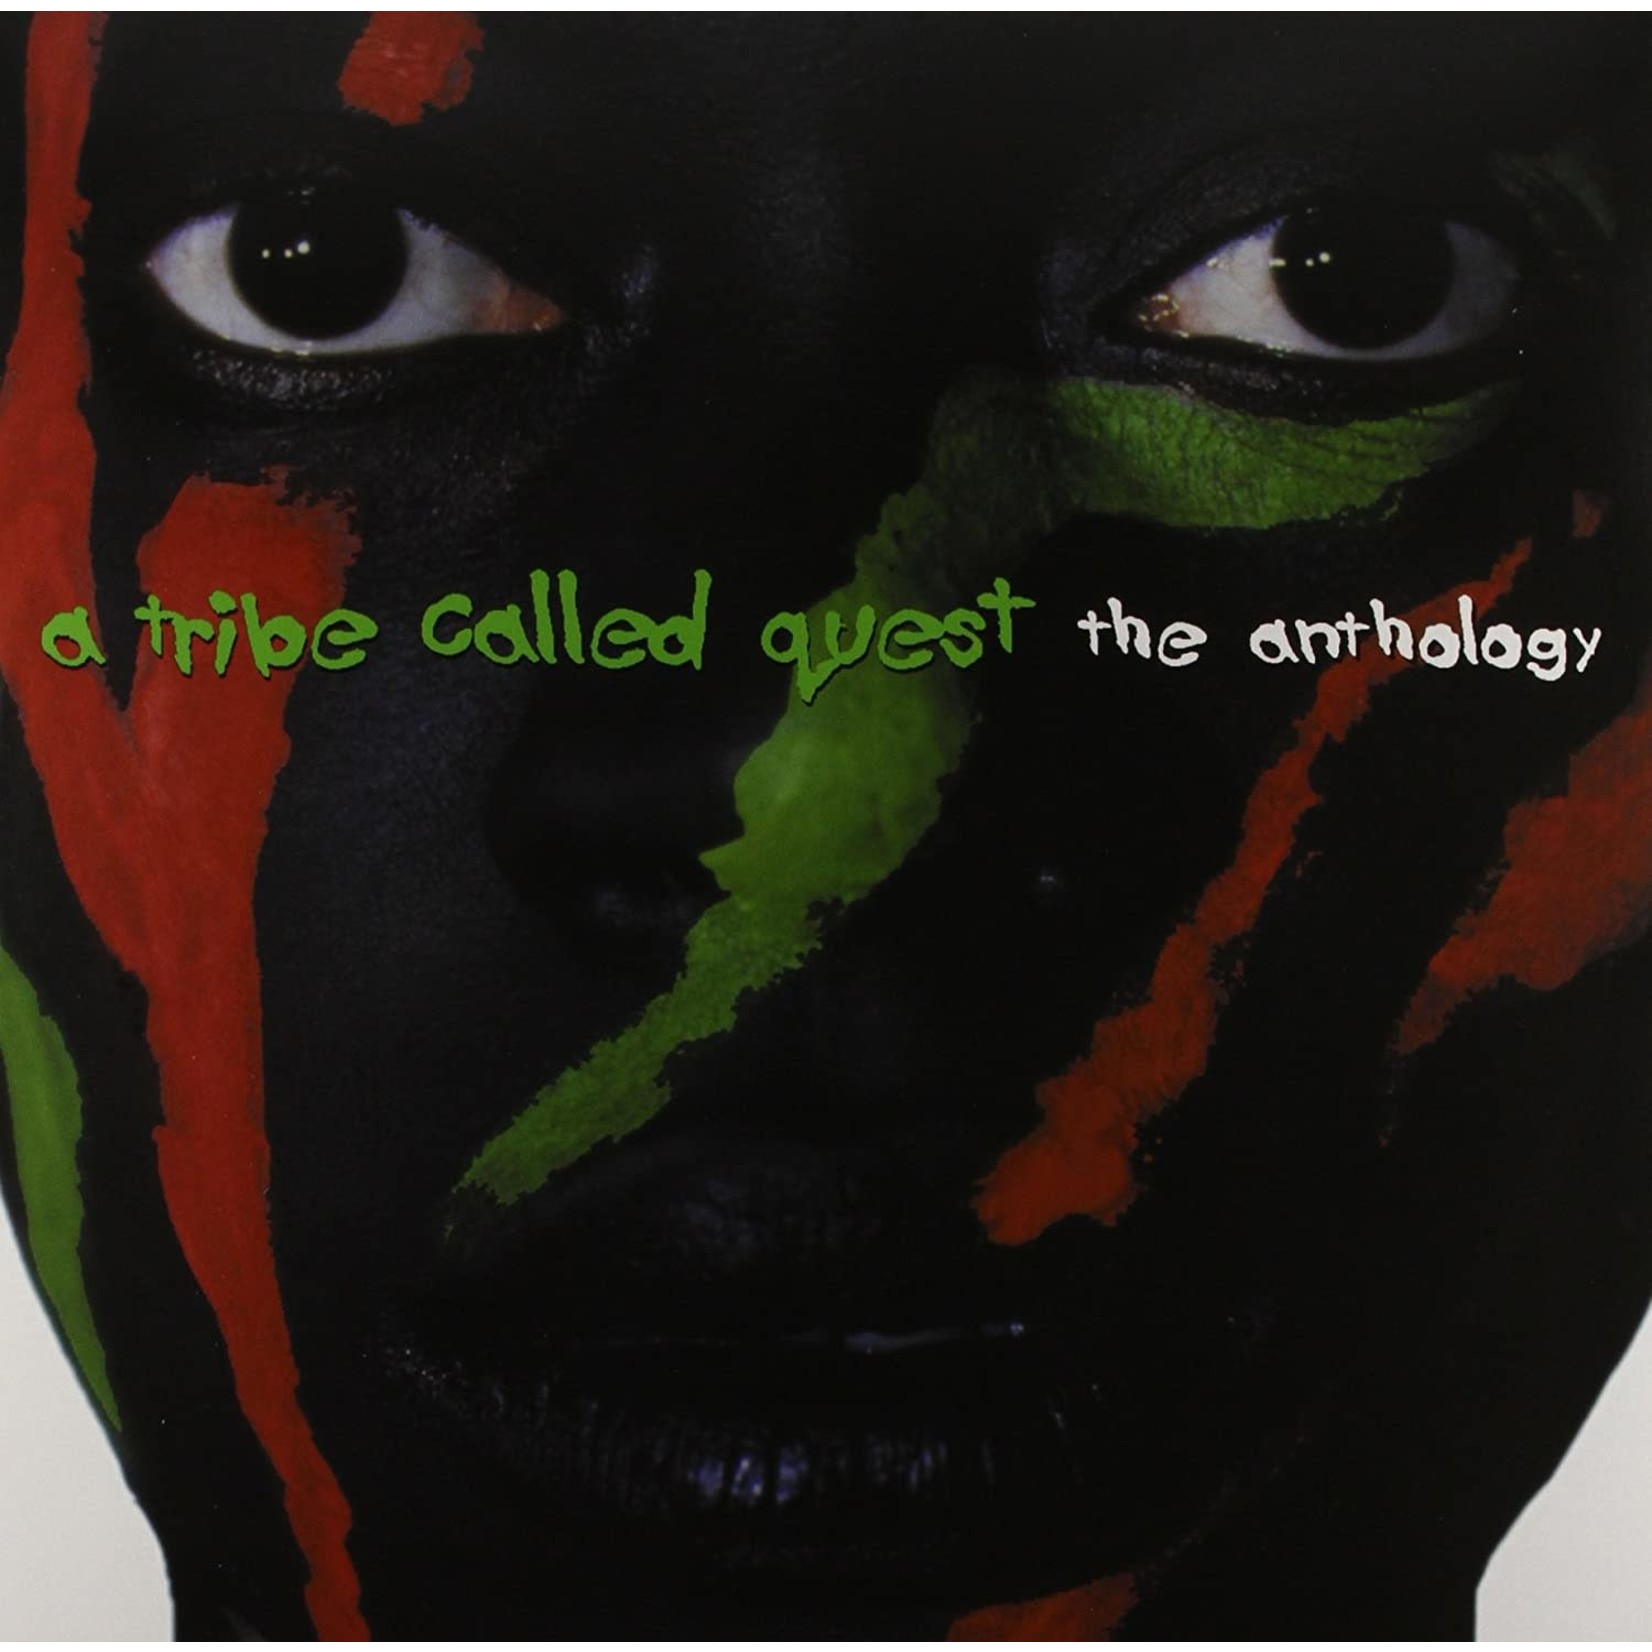 A TRIBE CALLED QUEST THE ANTHOLOGY